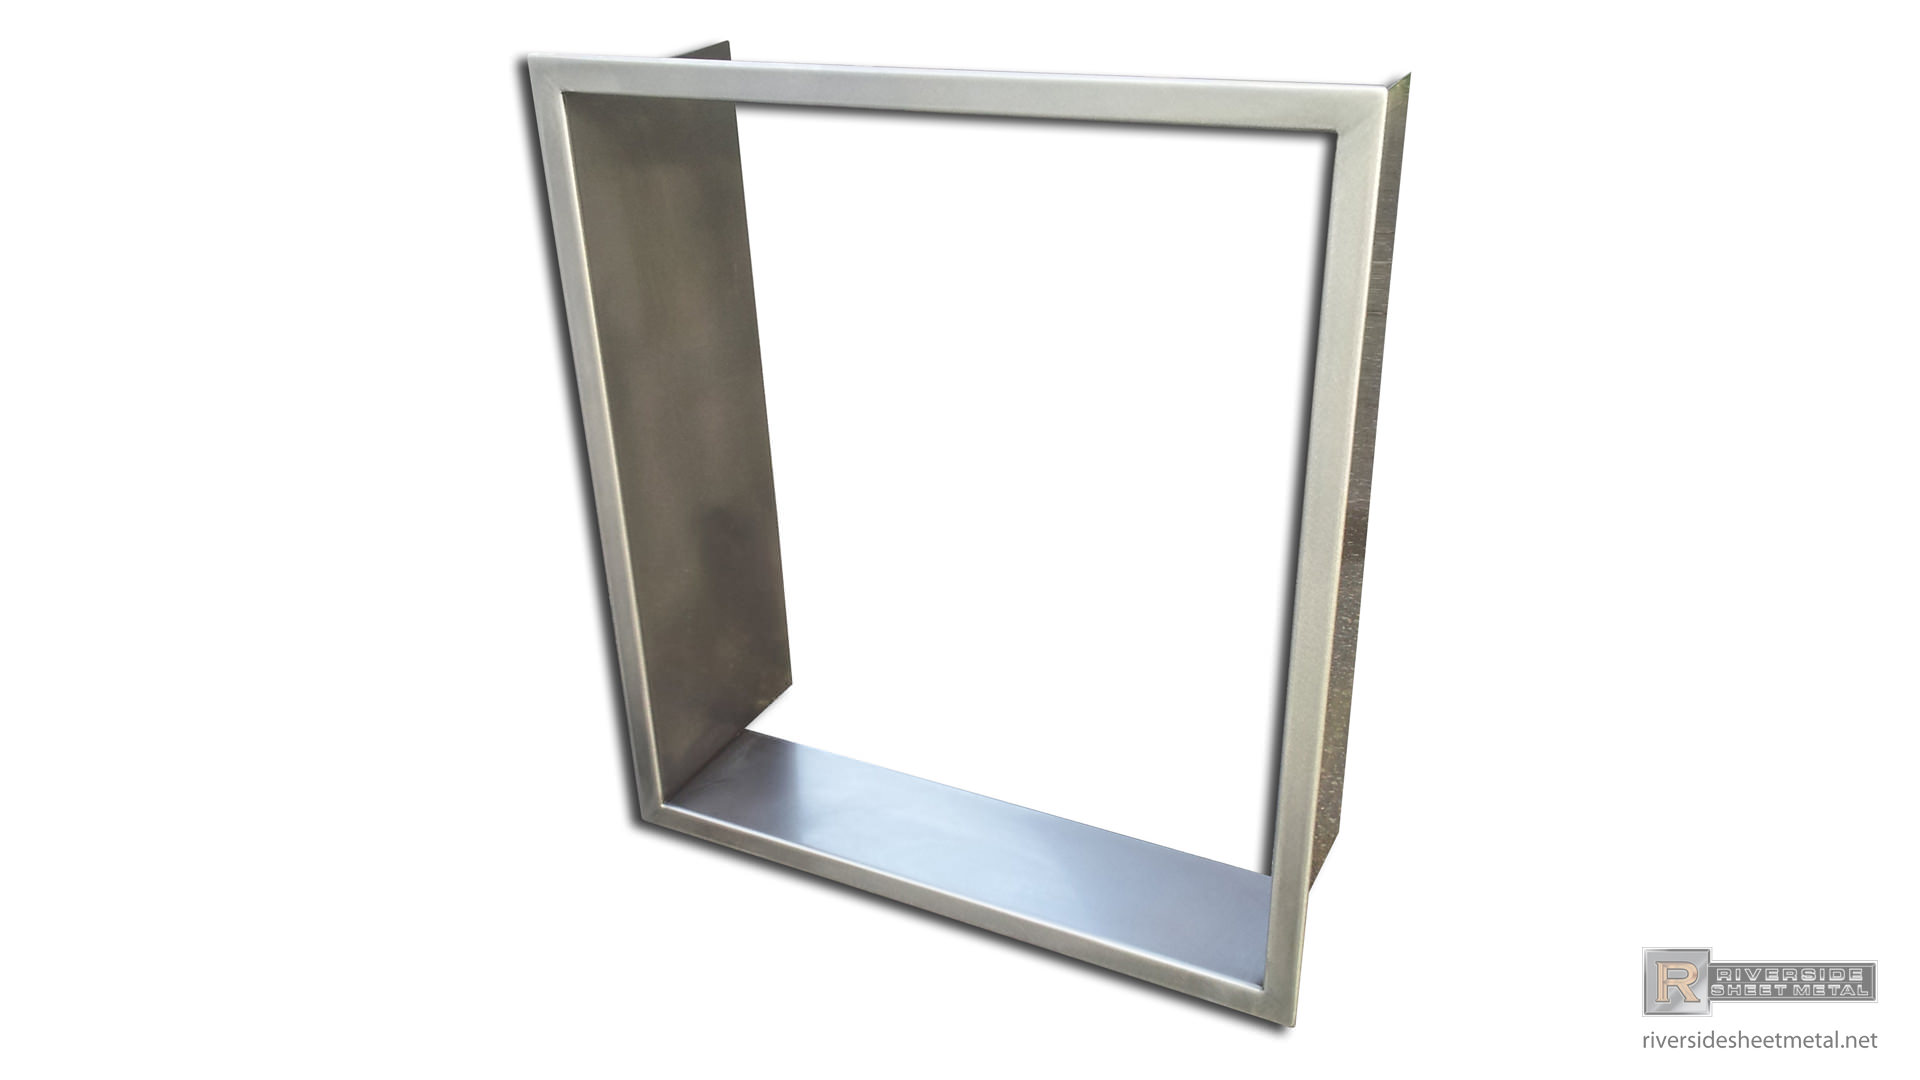 Yogurt machine stainless steel picture frames - Riverside MA